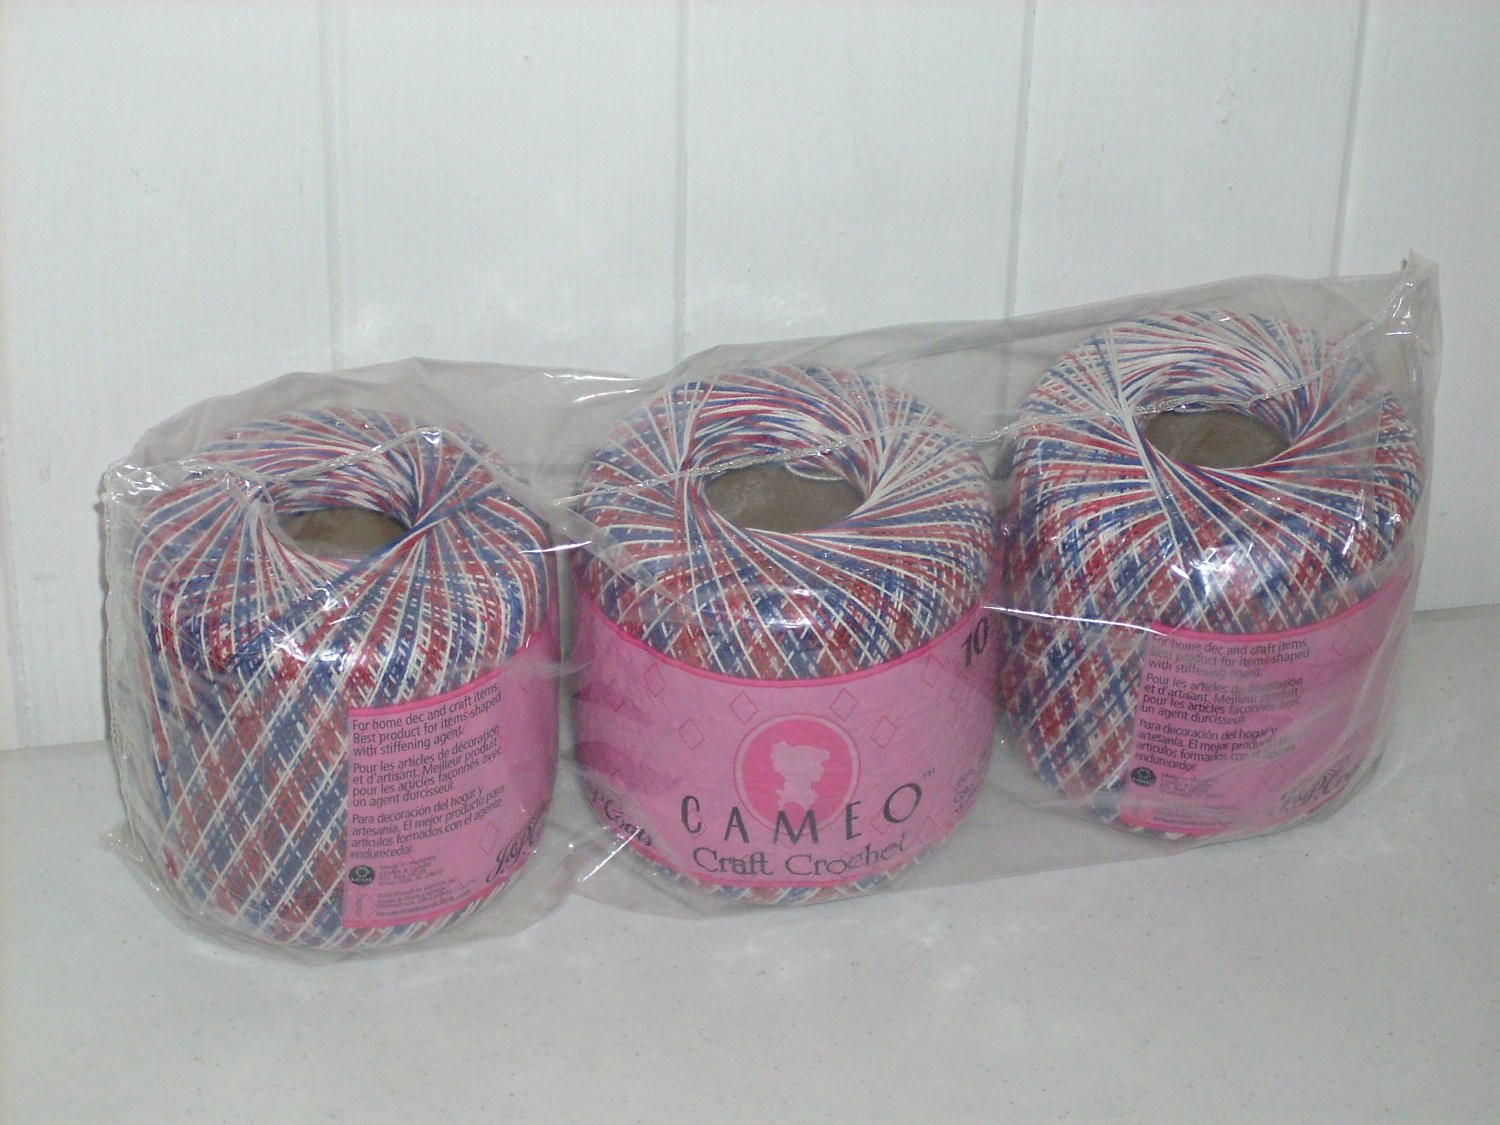 Crochet Threads Size 10 Unique Crochet Thread Size 10 Variegated Red White and Blue by Cameo Of Top 42 Ideas Crochet Threads Size 10